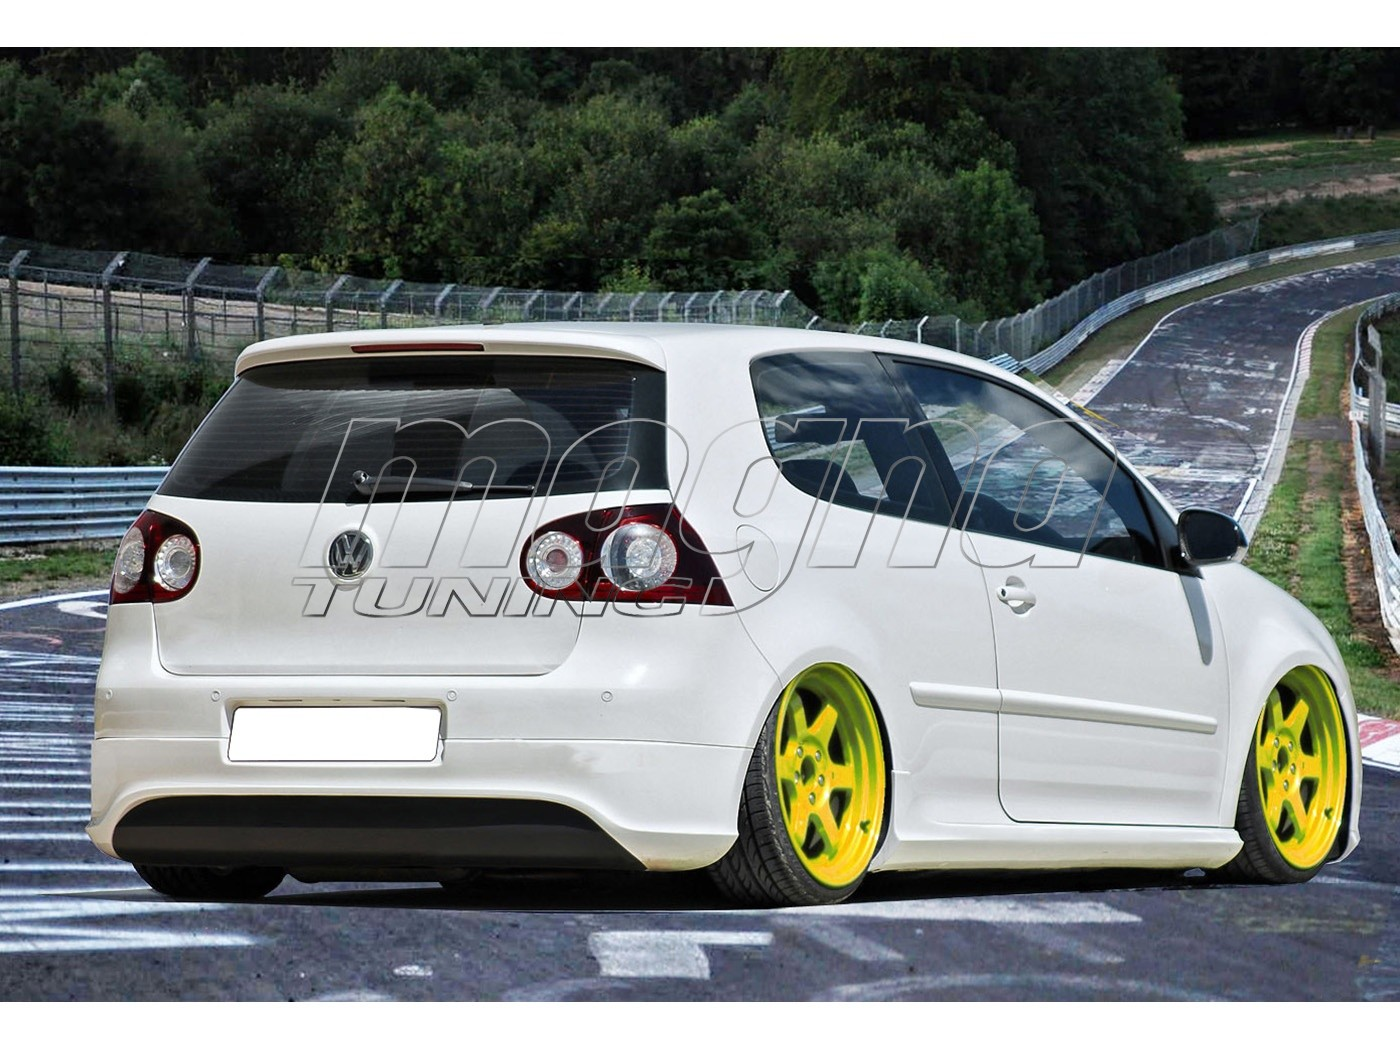 vw golf 5 r32 clean look rear bumper extension. Black Bedroom Furniture Sets. Home Design Ideas